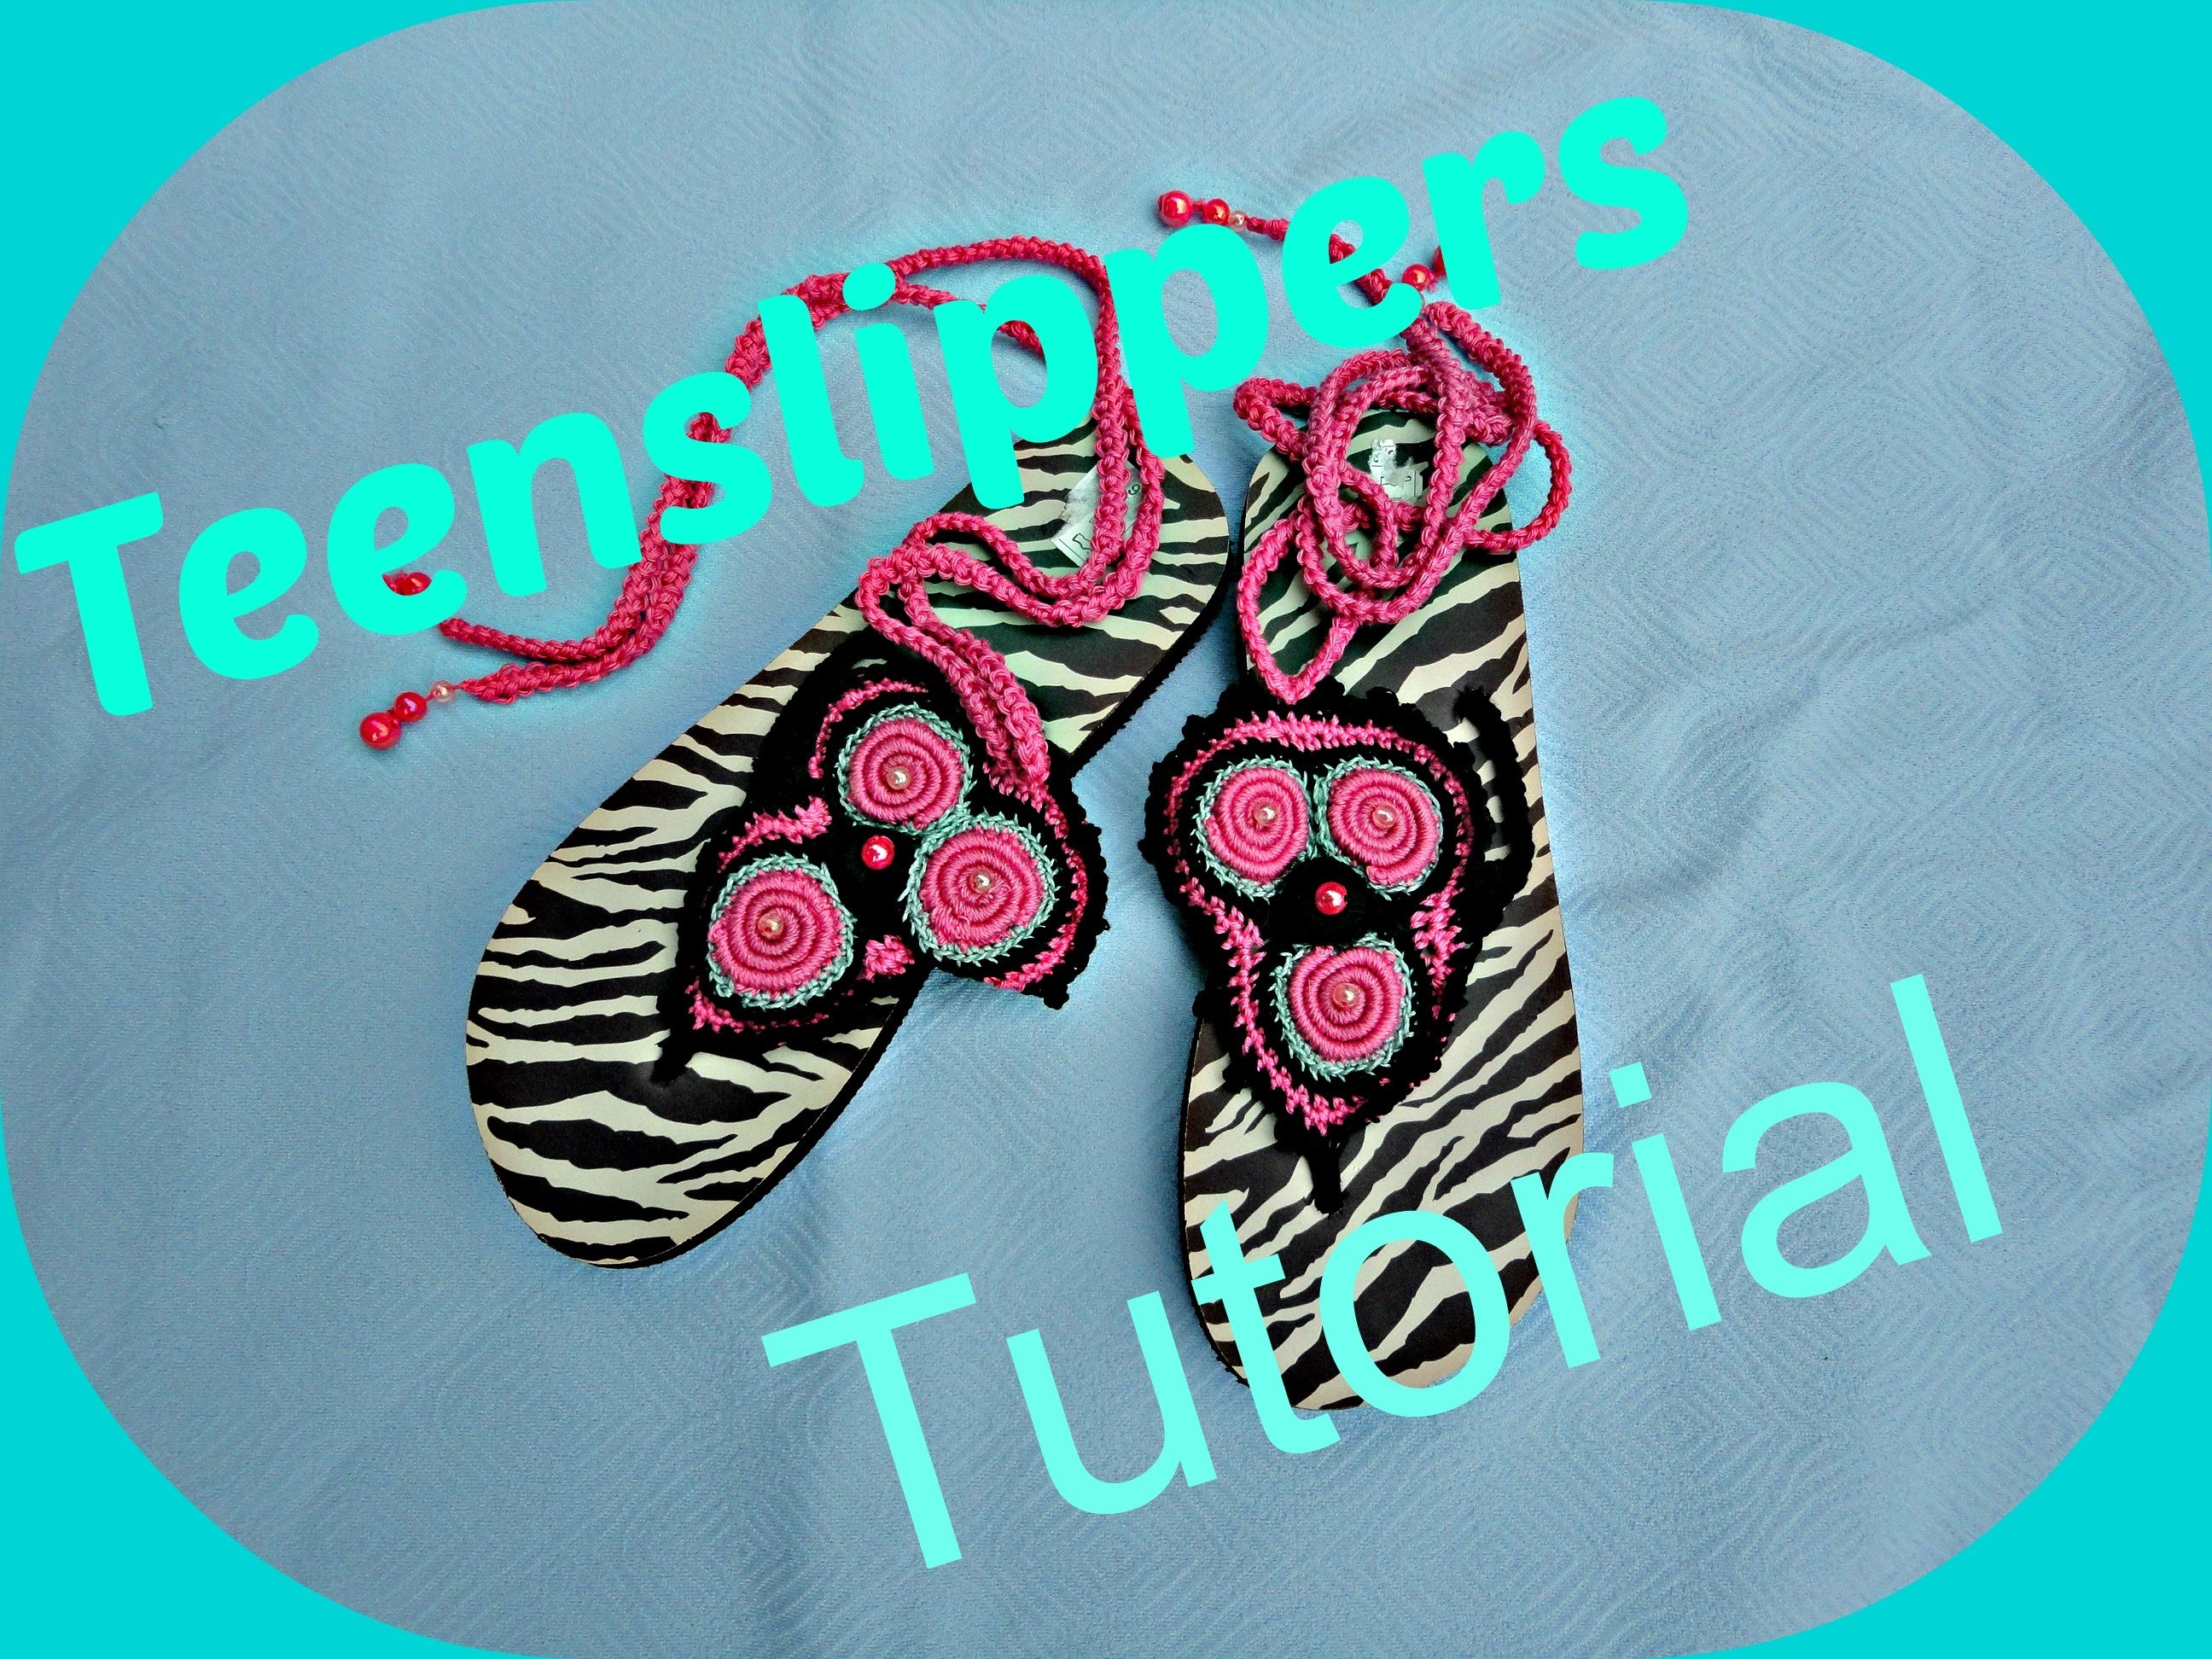 Haken doe je zo! Teenslippers haken tutorial